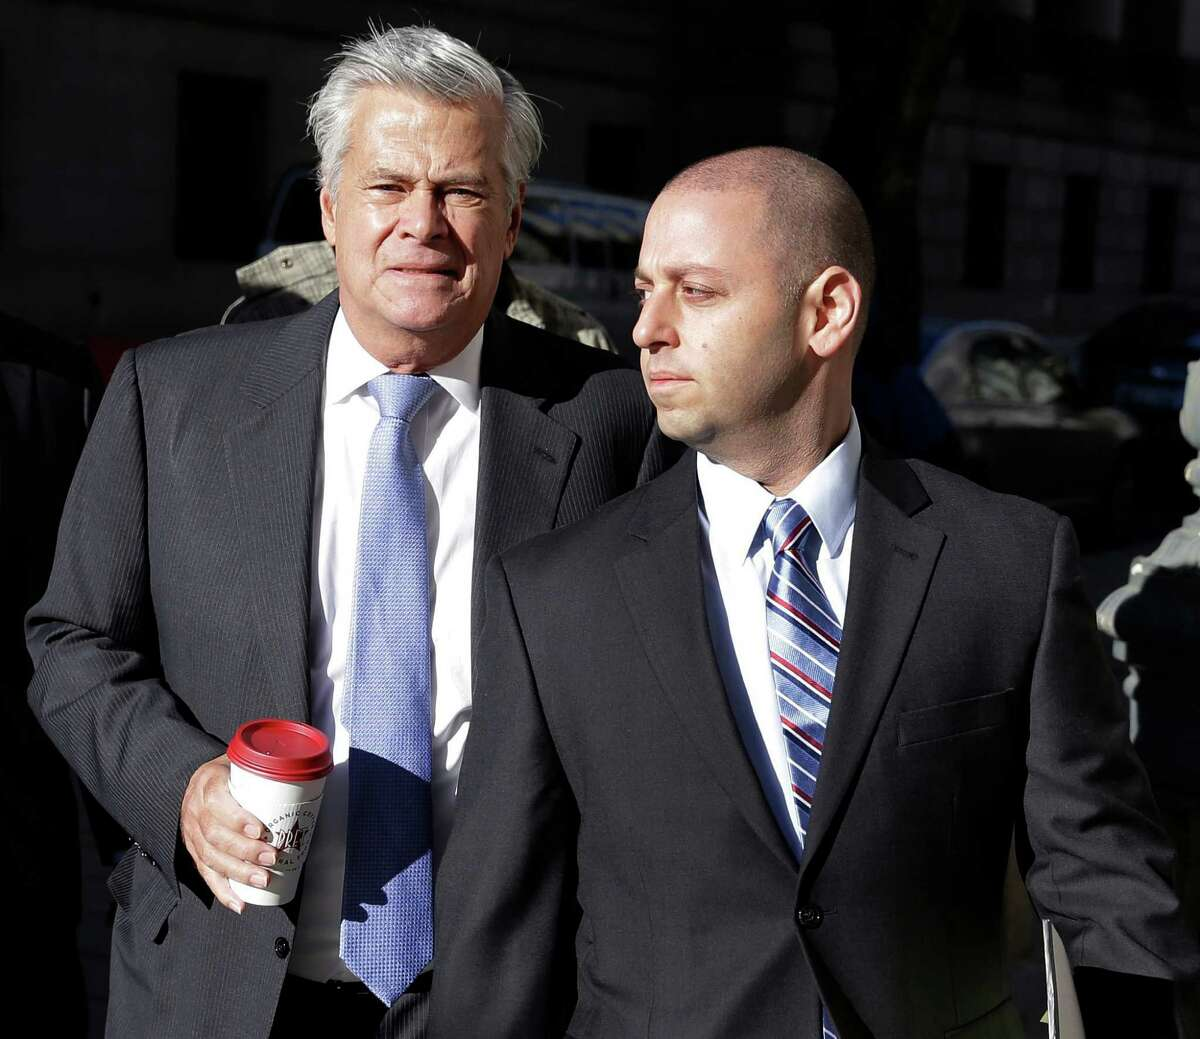 New York Sen. Dean Skelos, left, and his son Adam Skelos arrive to court in New York, Tuesday, Nov. 17, 2015. Jury selection is expected to continue Tuesday in the corruption trial of Dean Skelos, who is facing federal charges that he extorted bribes from companies with business before the state. (AP Photo/Seth Wenig) ORG XMIT: NYSW102